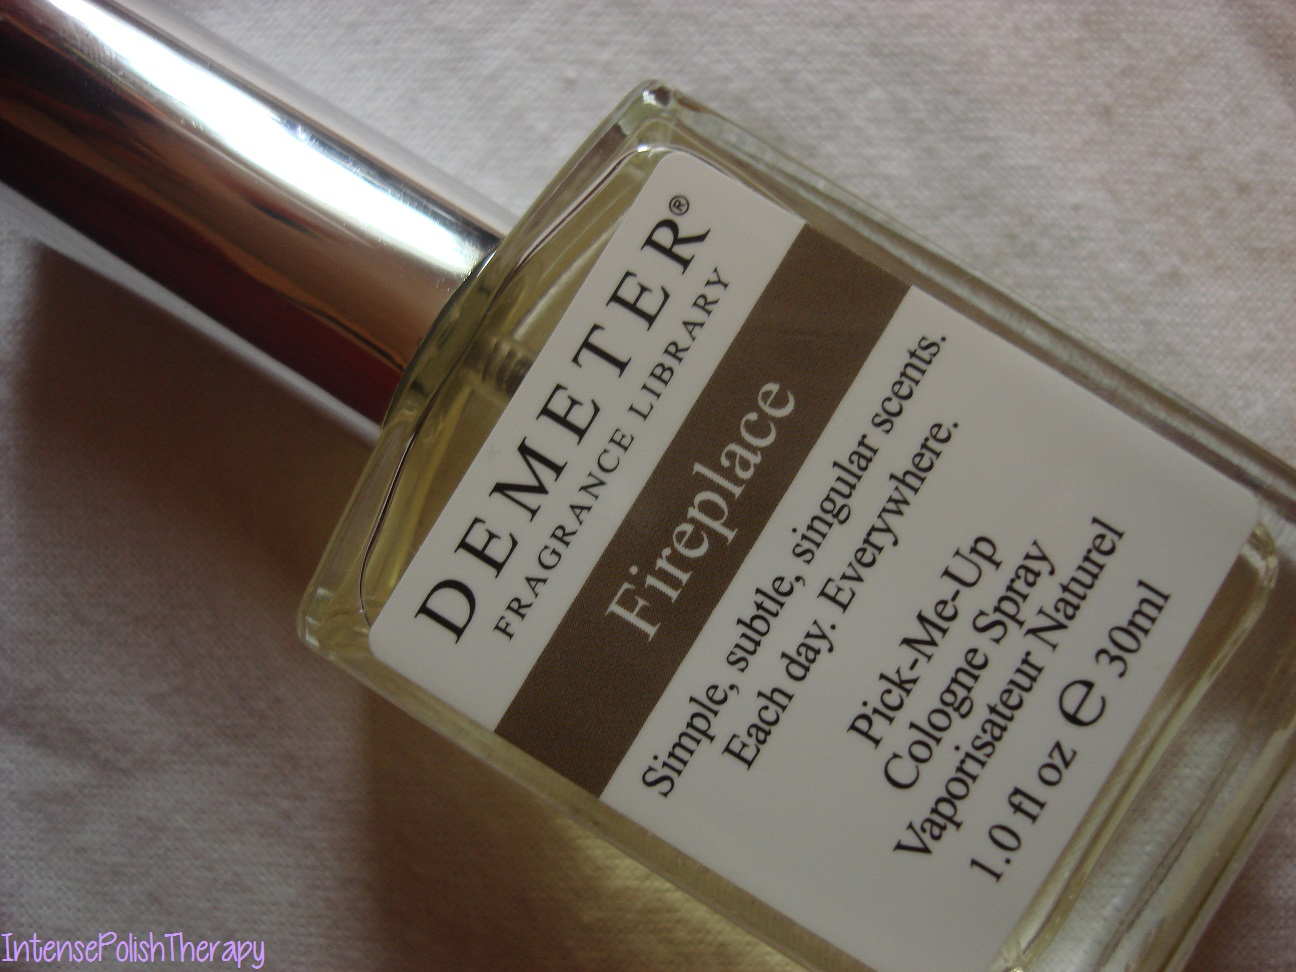 Demeter Fragrance Library - Fireplace